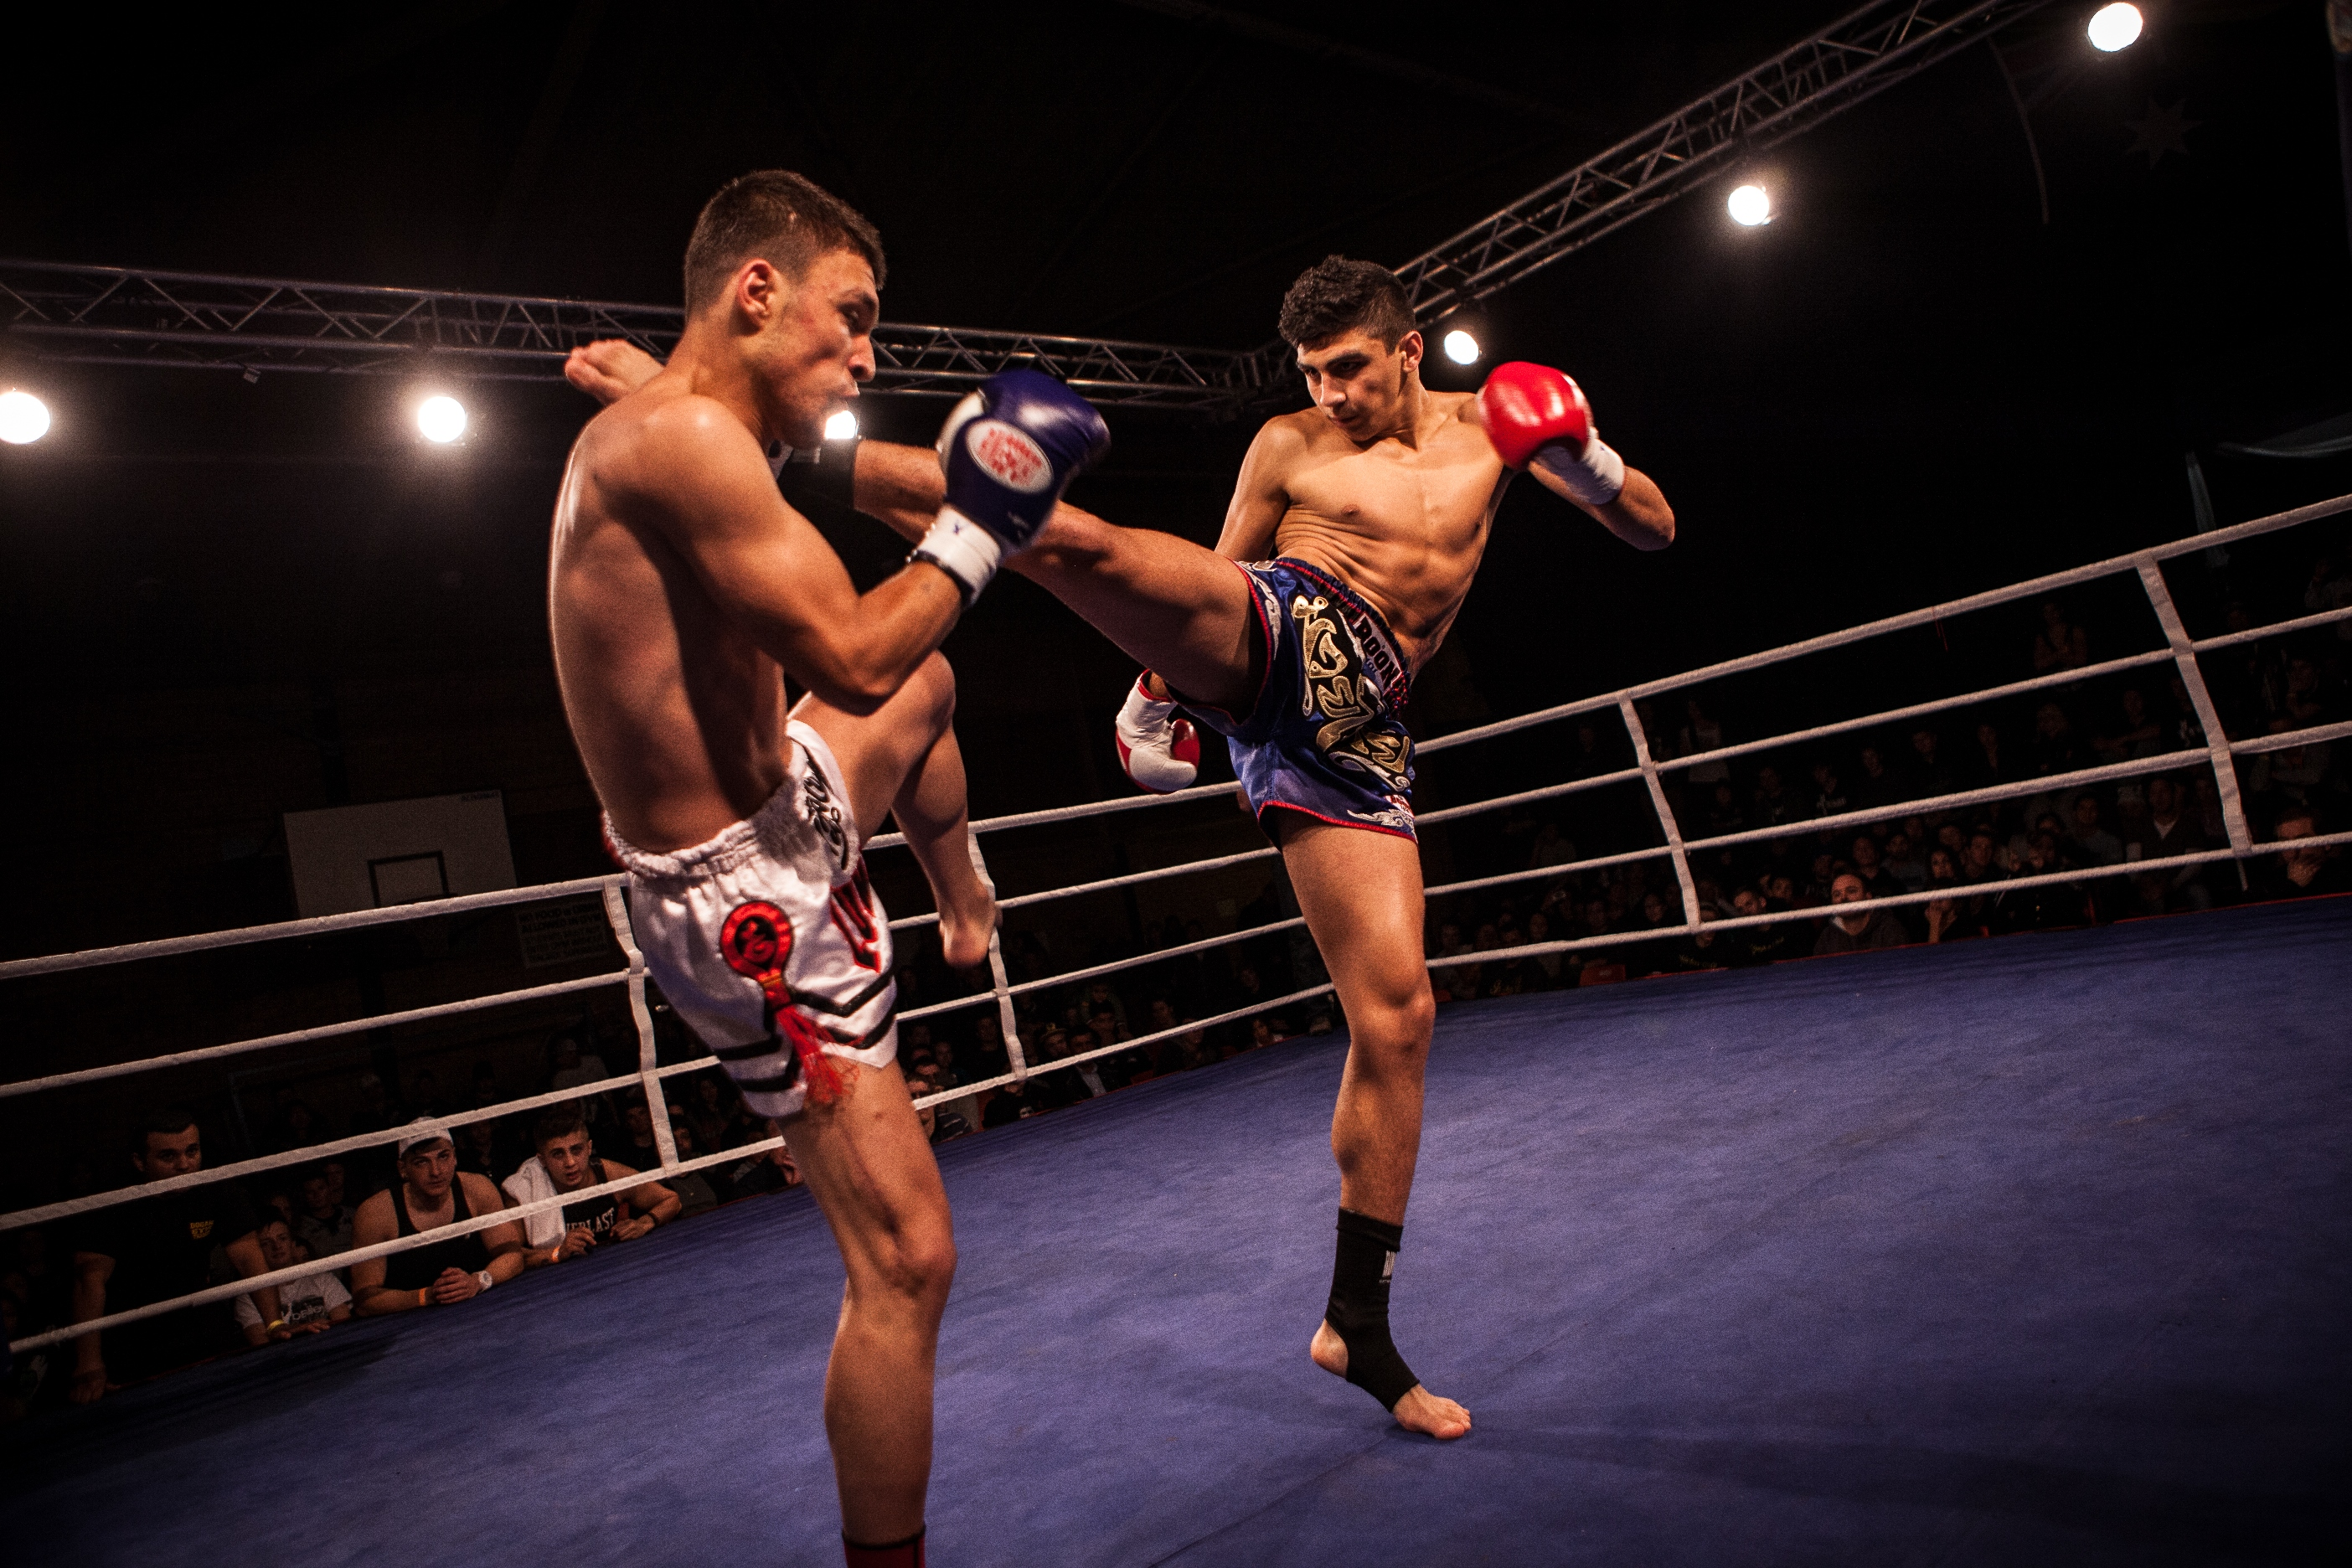 muay thai tranisition boxing